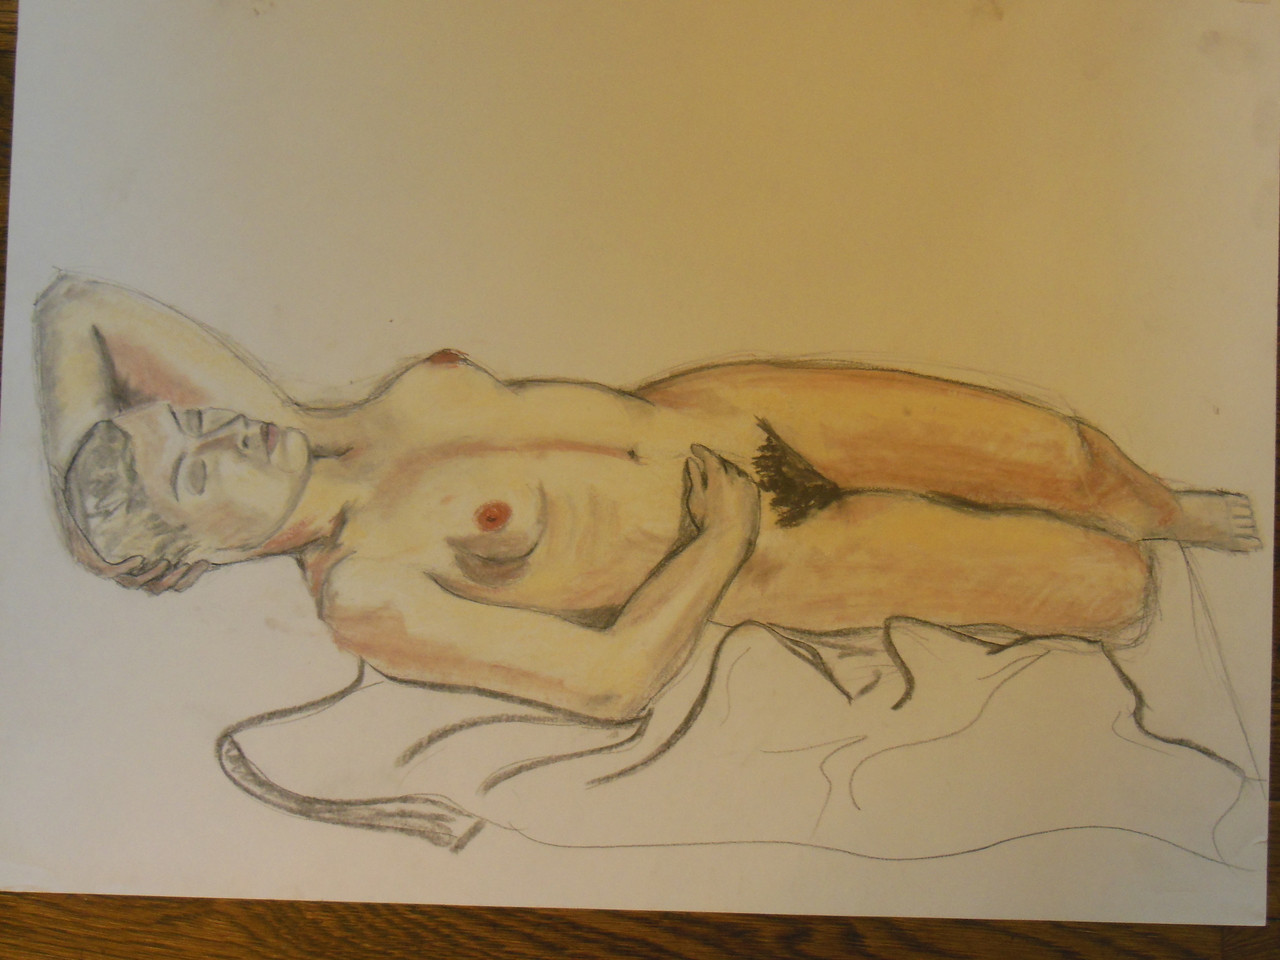 Nude Drawing: Charcoal & pastel on grey paper. 23